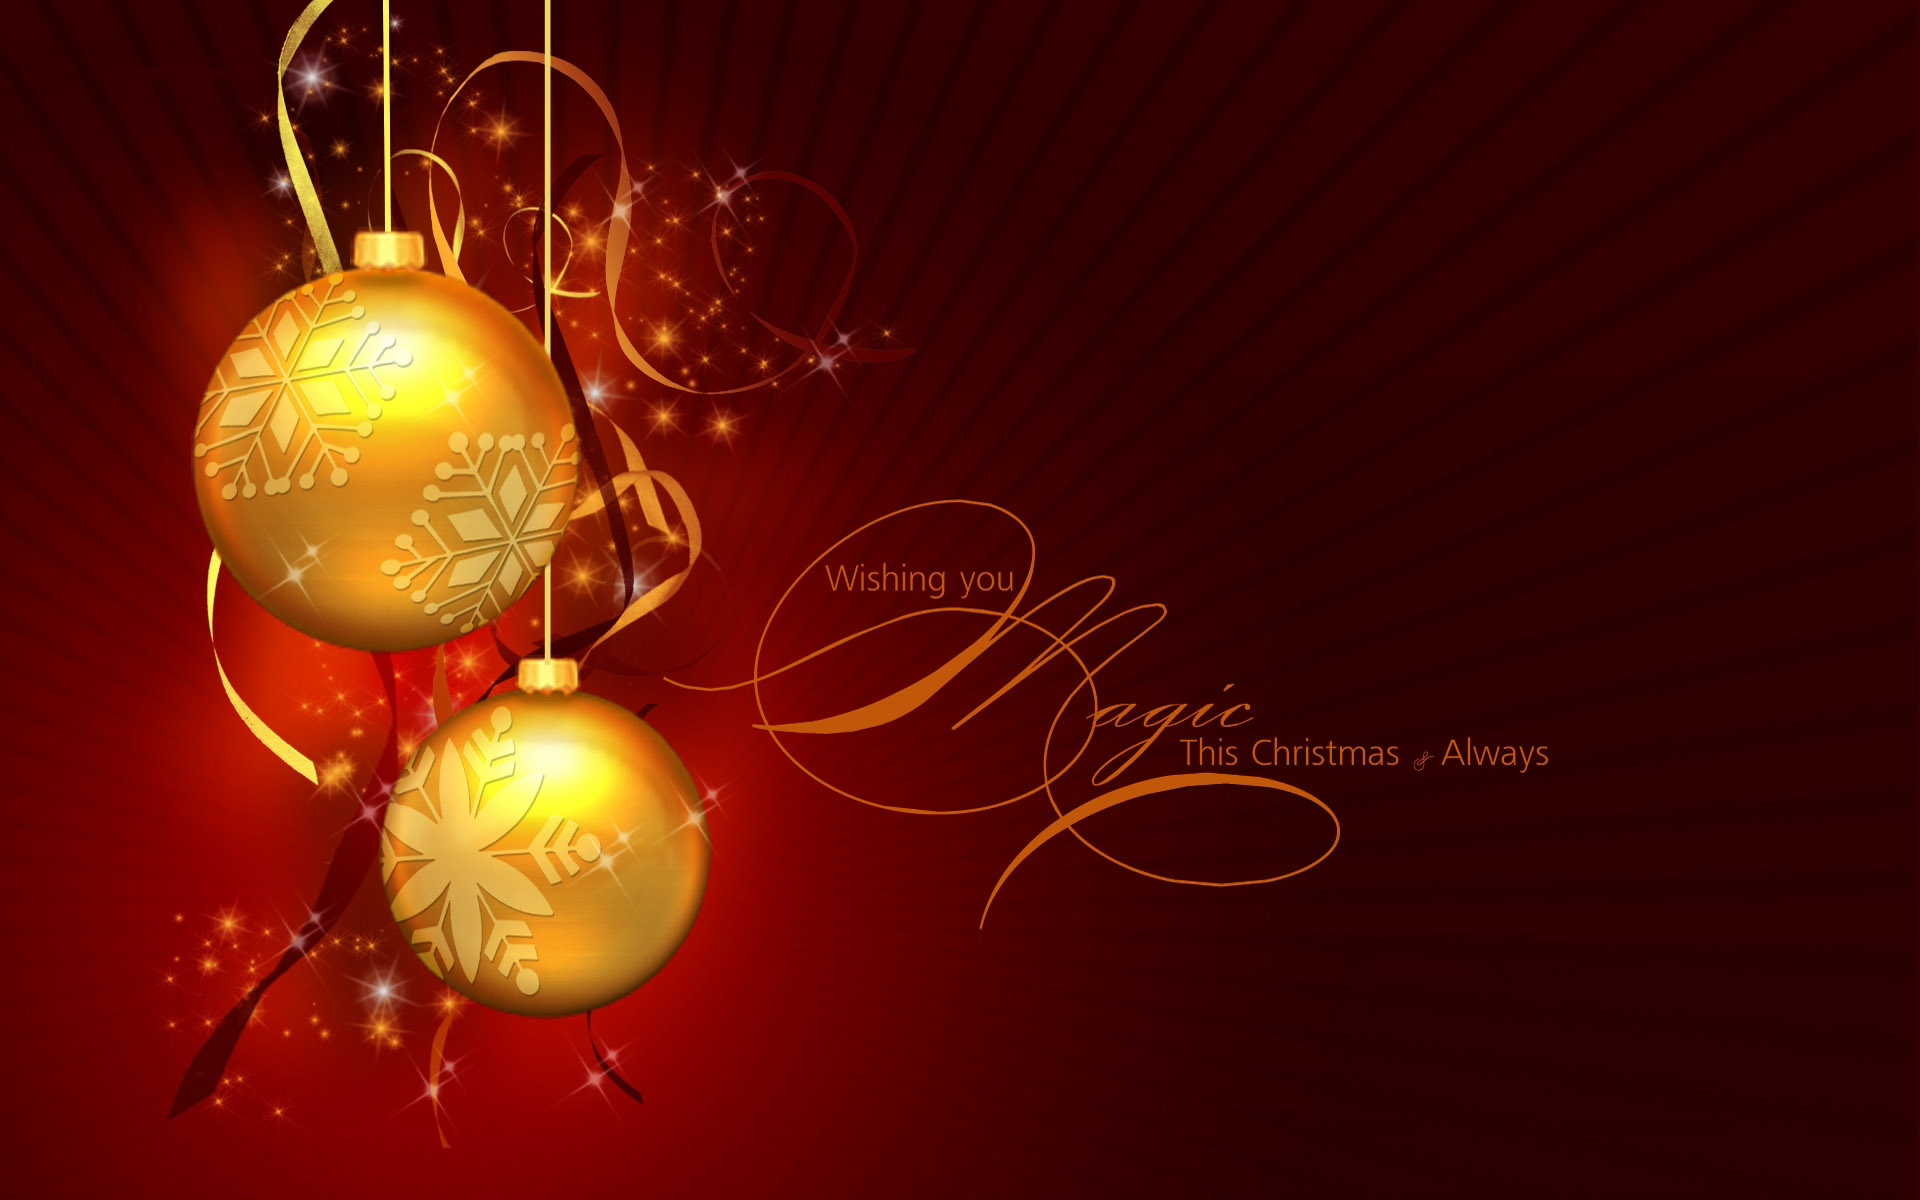 happy christmas wishes golden balls latest hd wallpaper